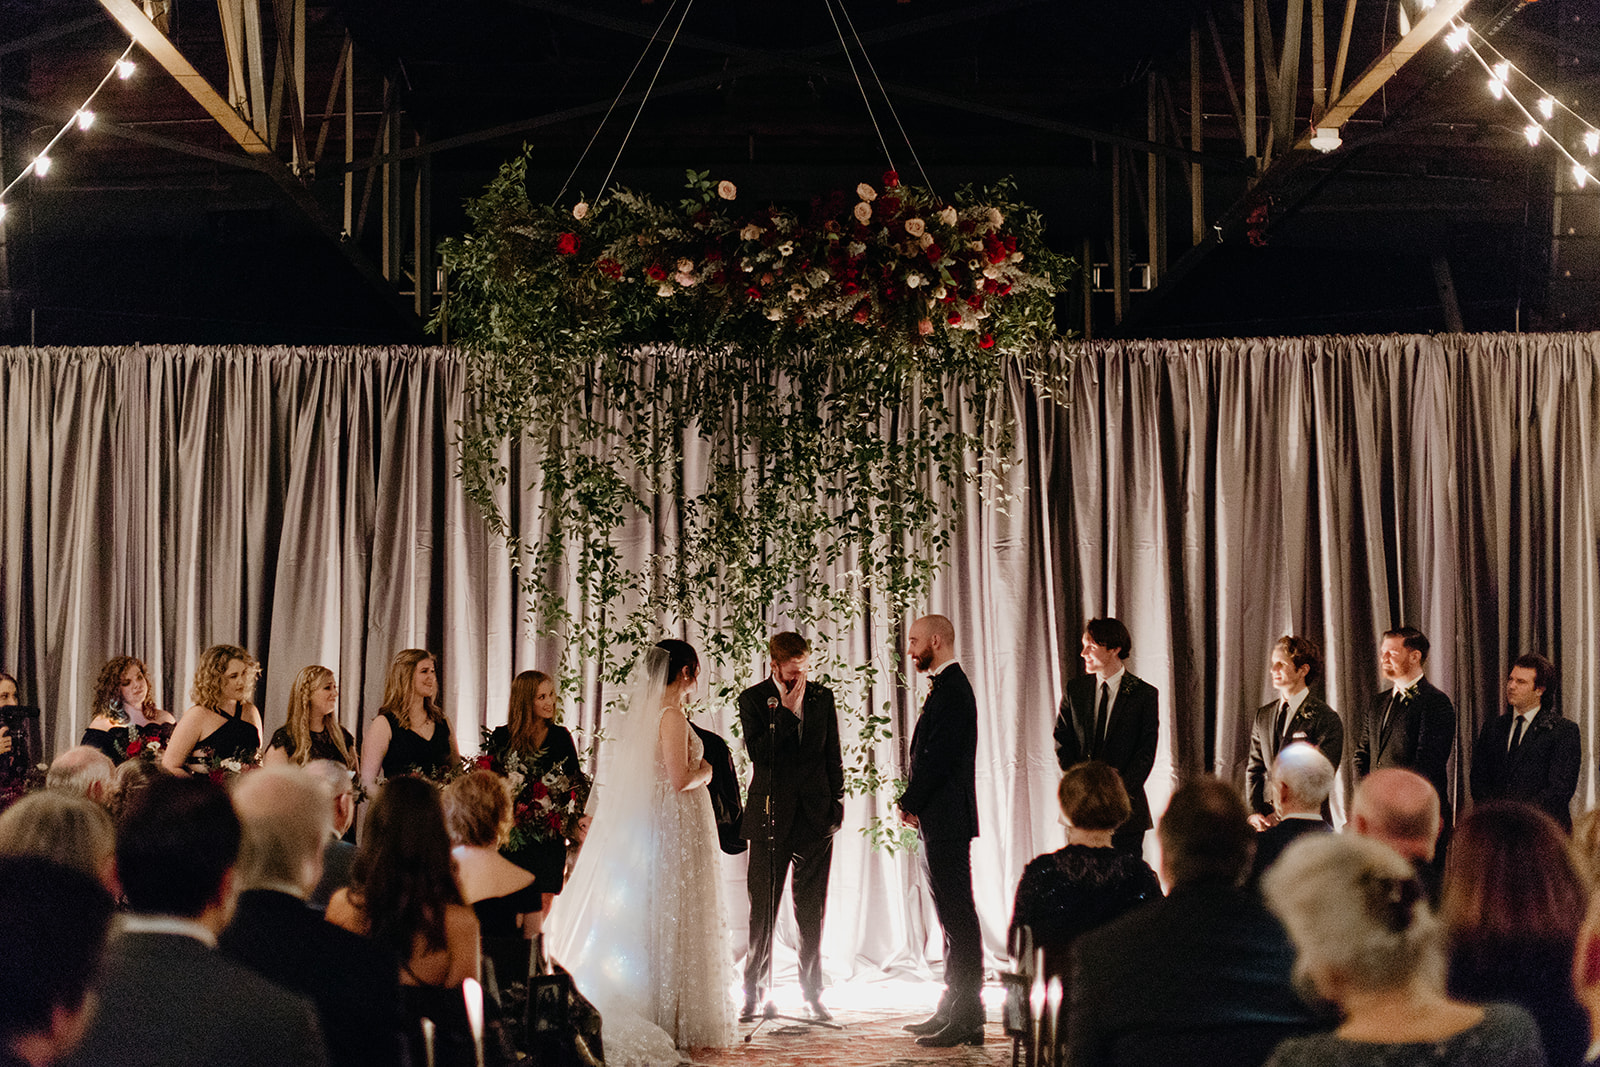 Candlelit entrance for the bride with a hanging floral installation for the wedding ceremony backdrop! Nashville Wedding flowers at Marathon Music Works.